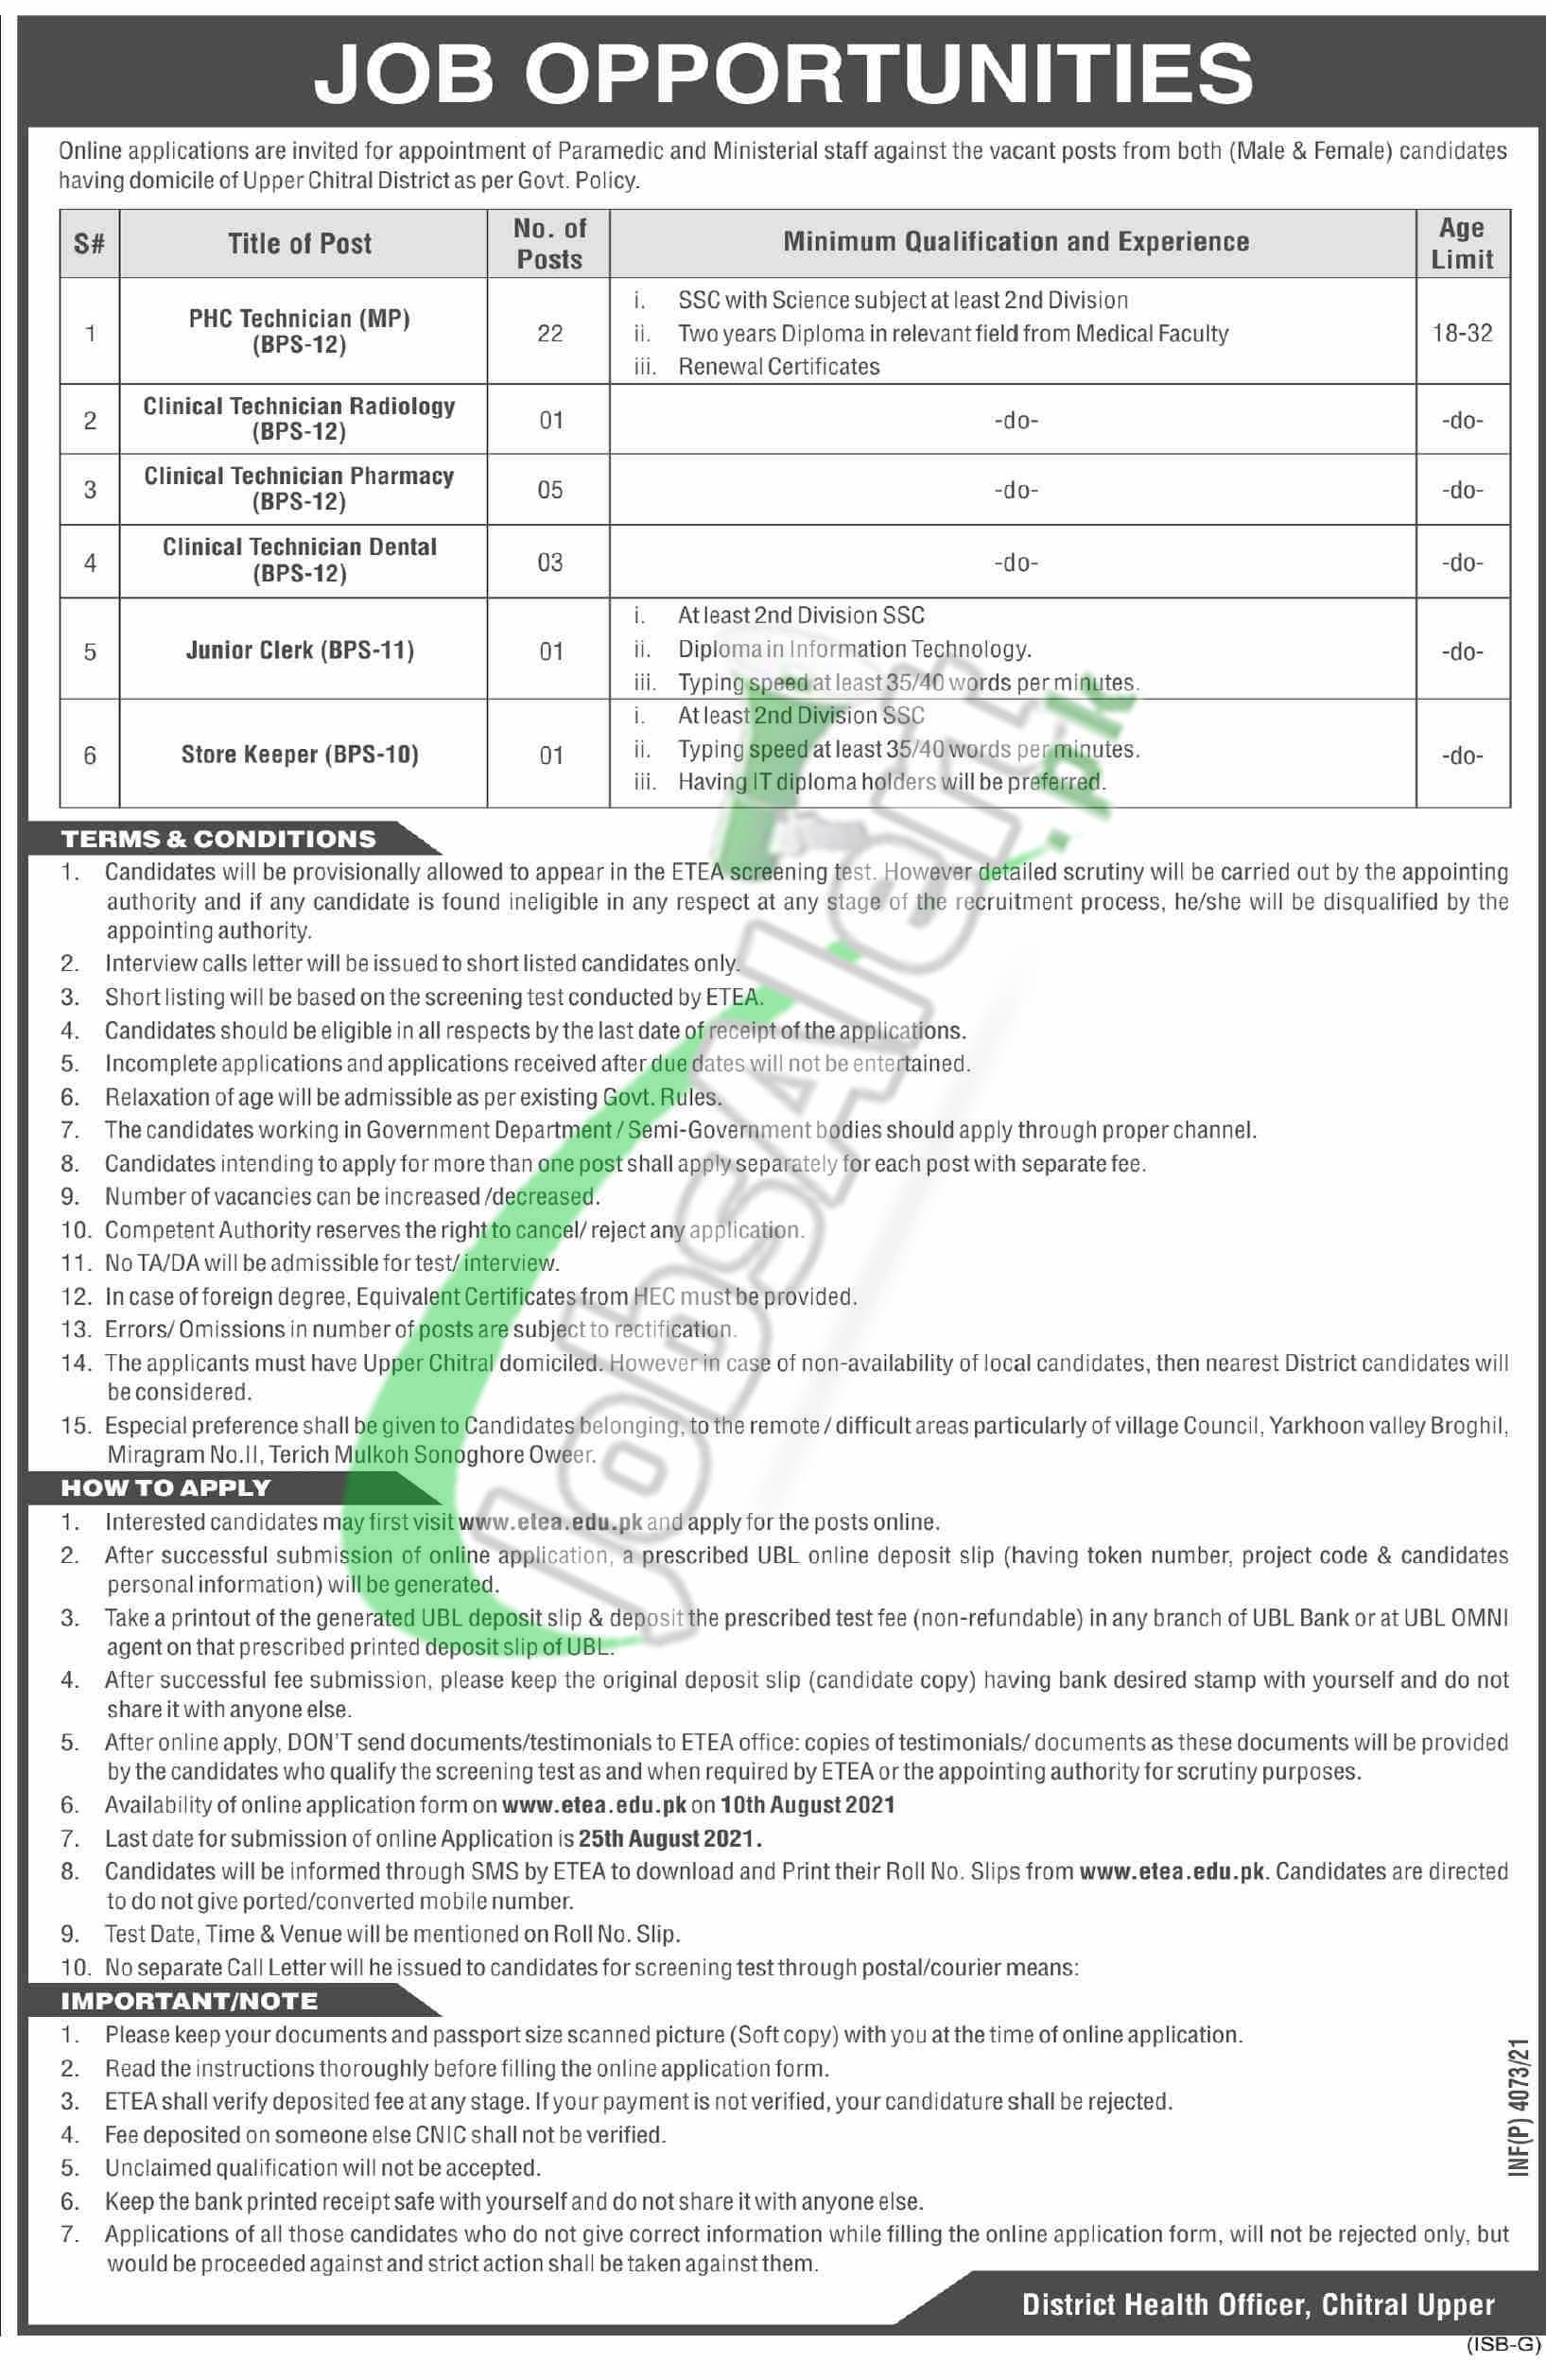 District Health Authority Chitral Upper Jobs